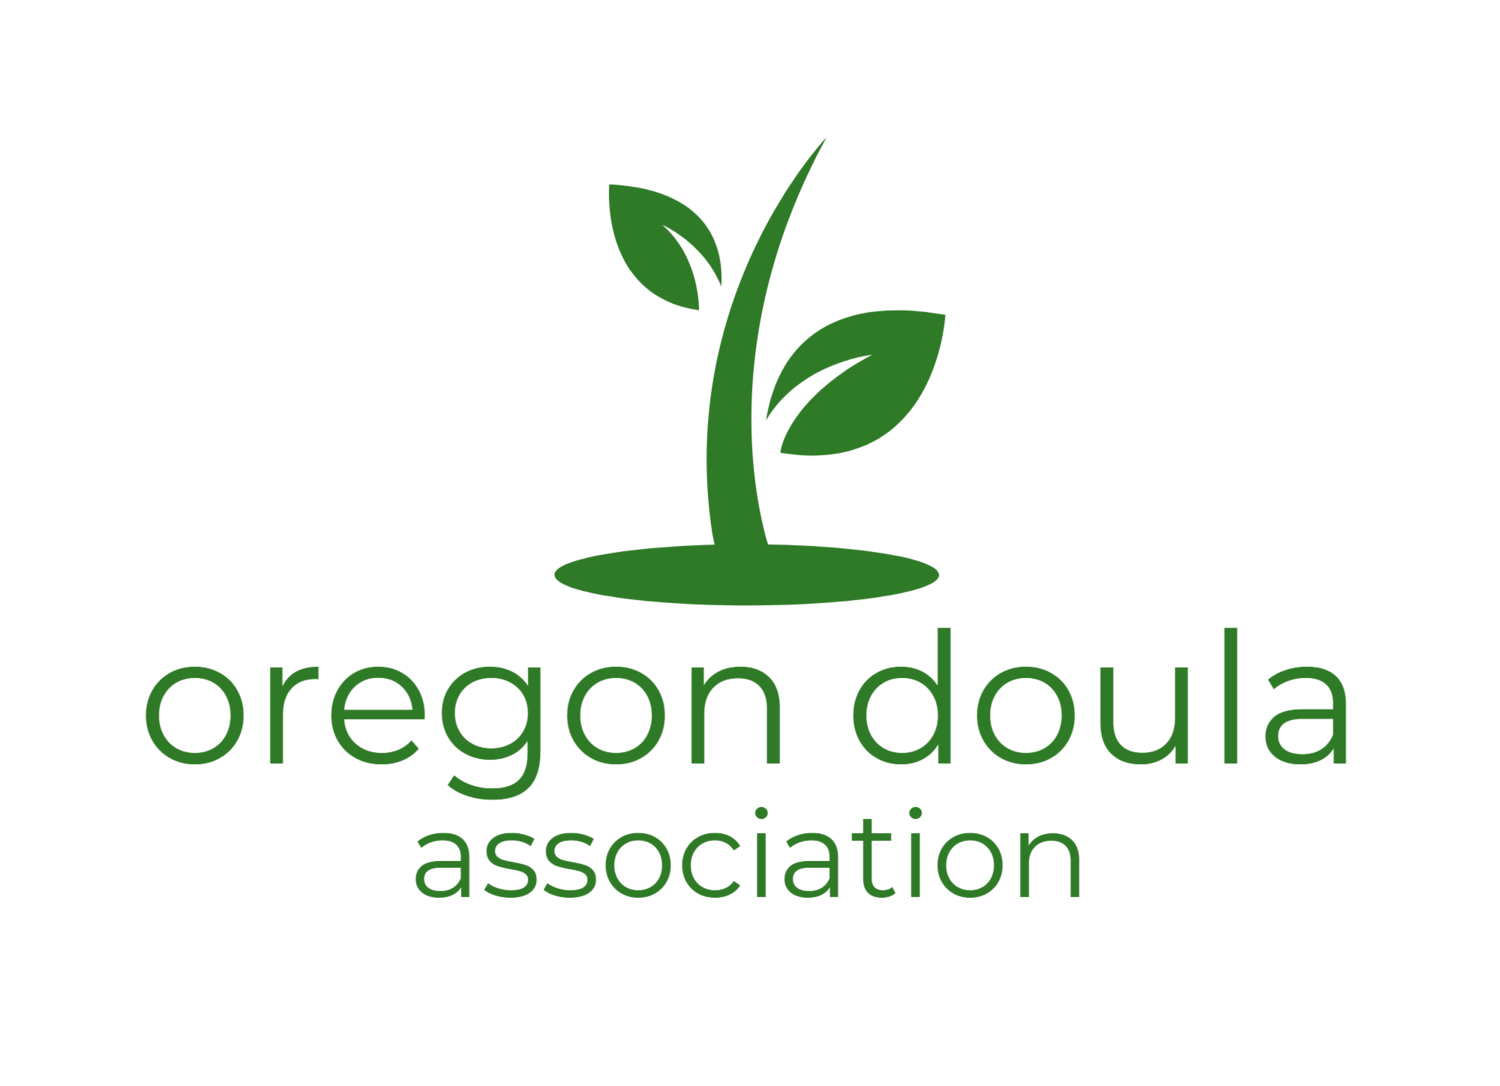 Oregon Doula Association